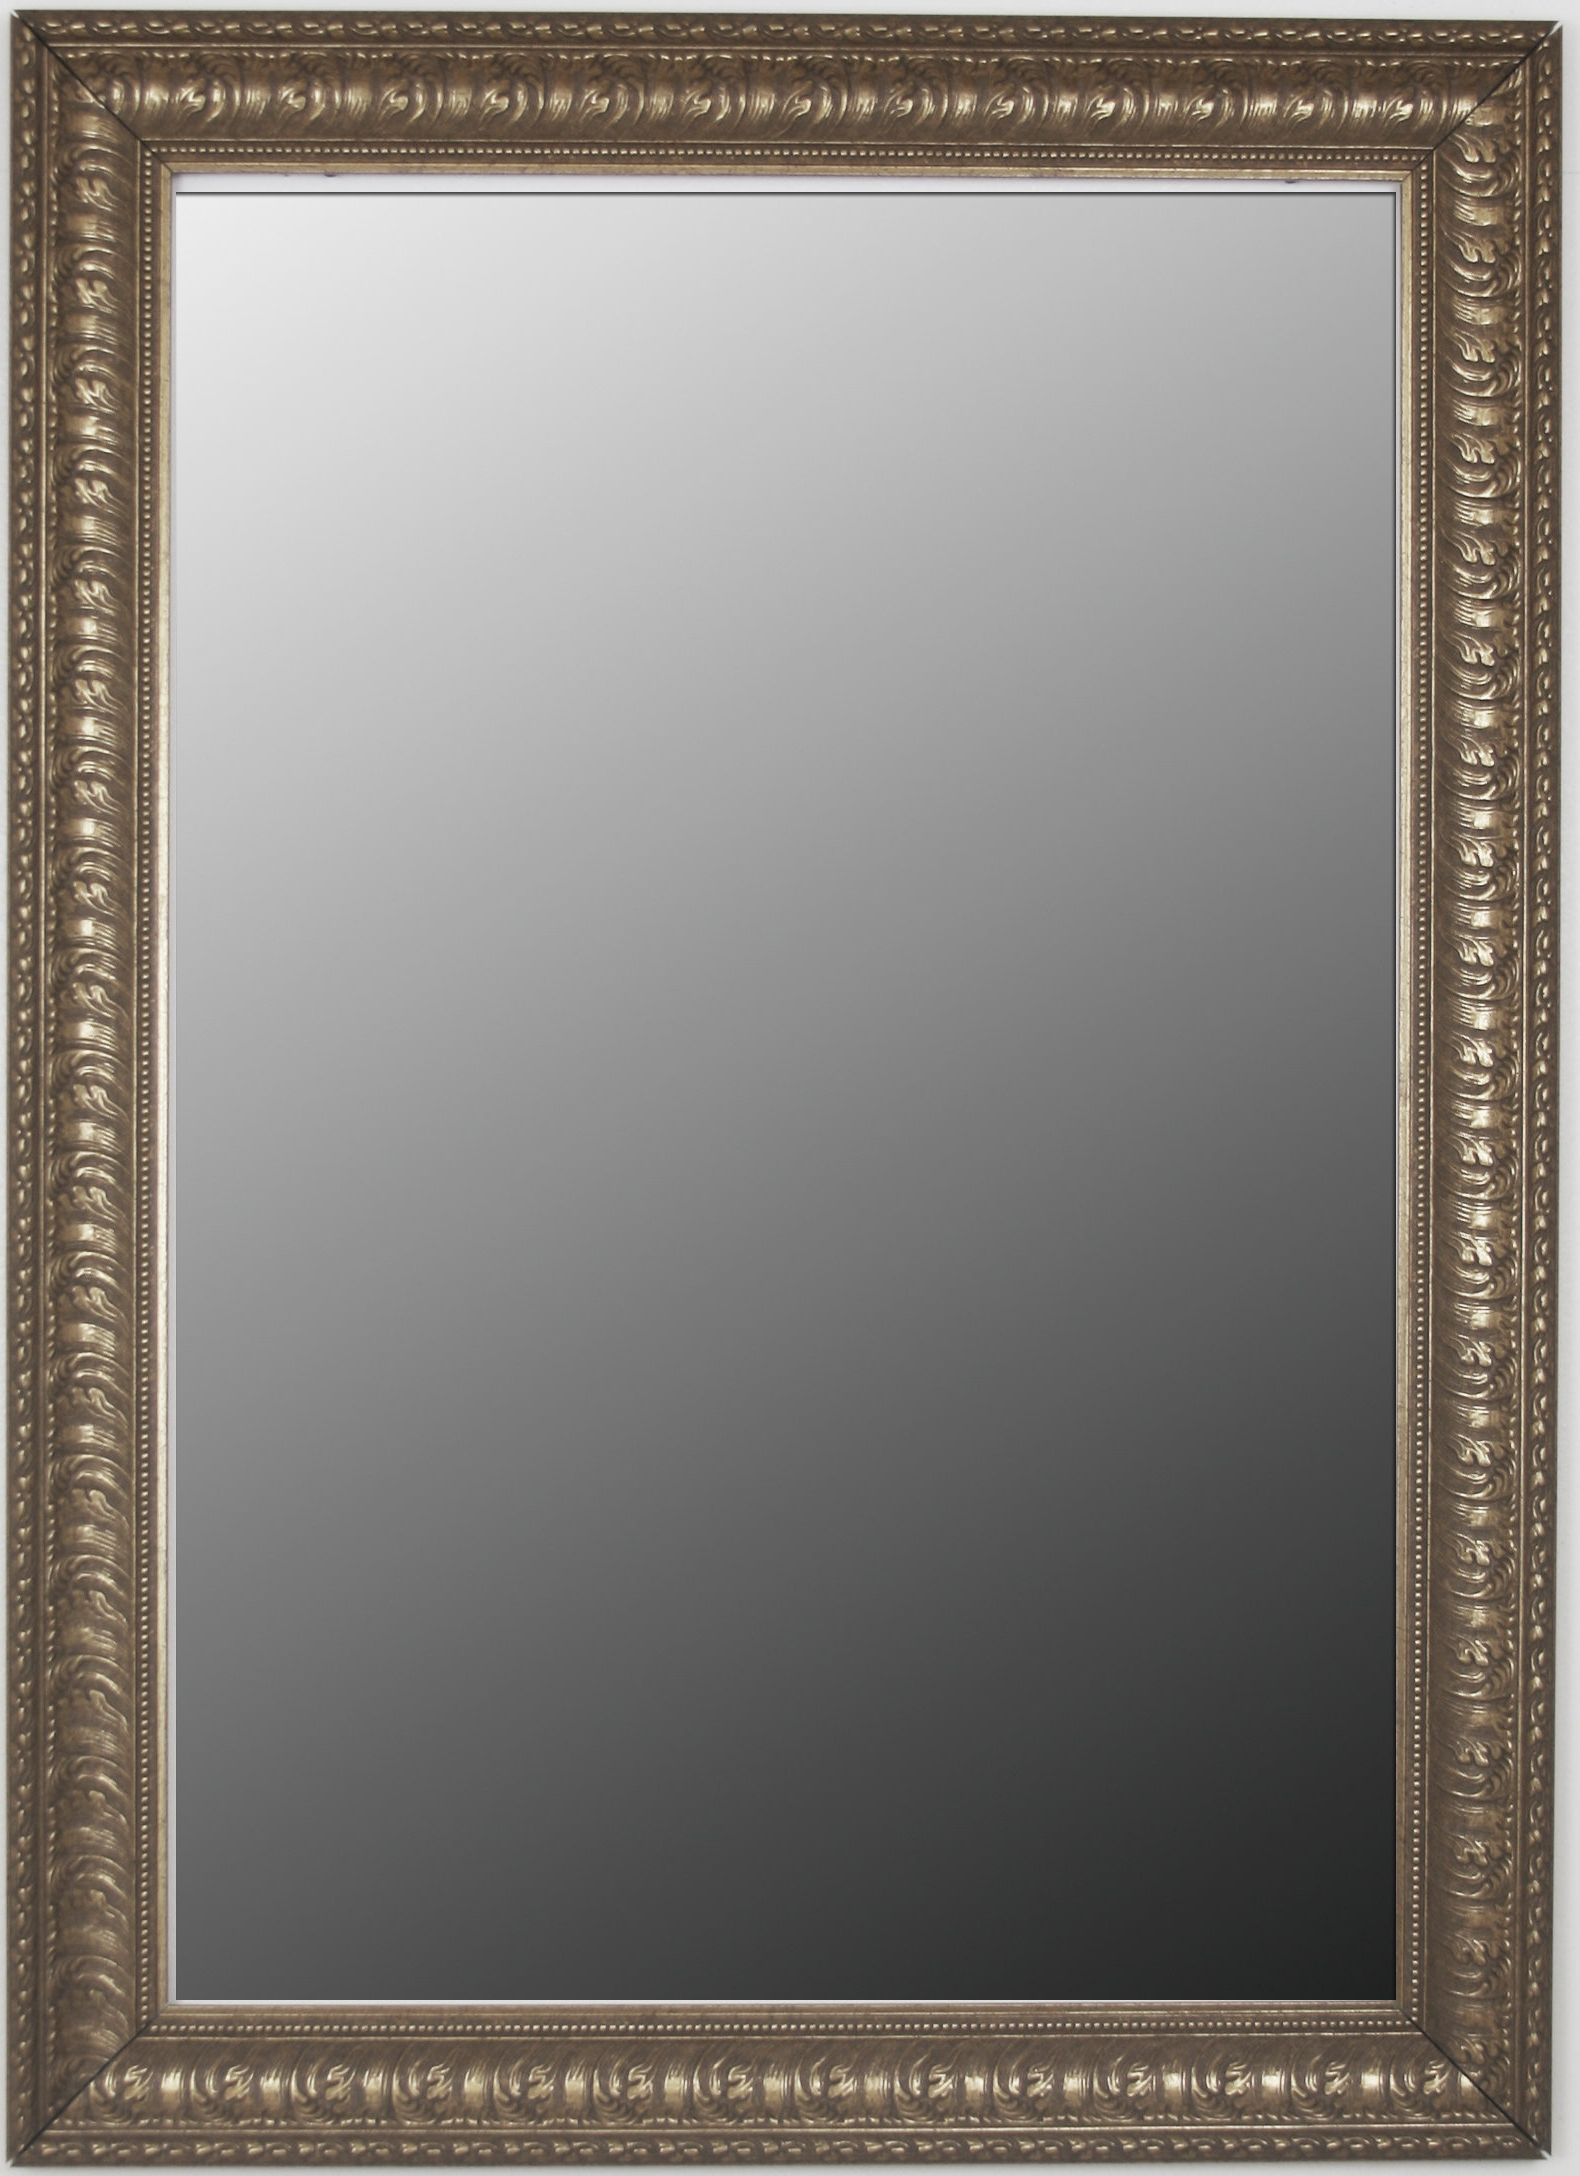 Beaded Accent Wall Mirrors For Fashionable Hawkinson Beaded Accents Wall Mirror (View 4 of 20)